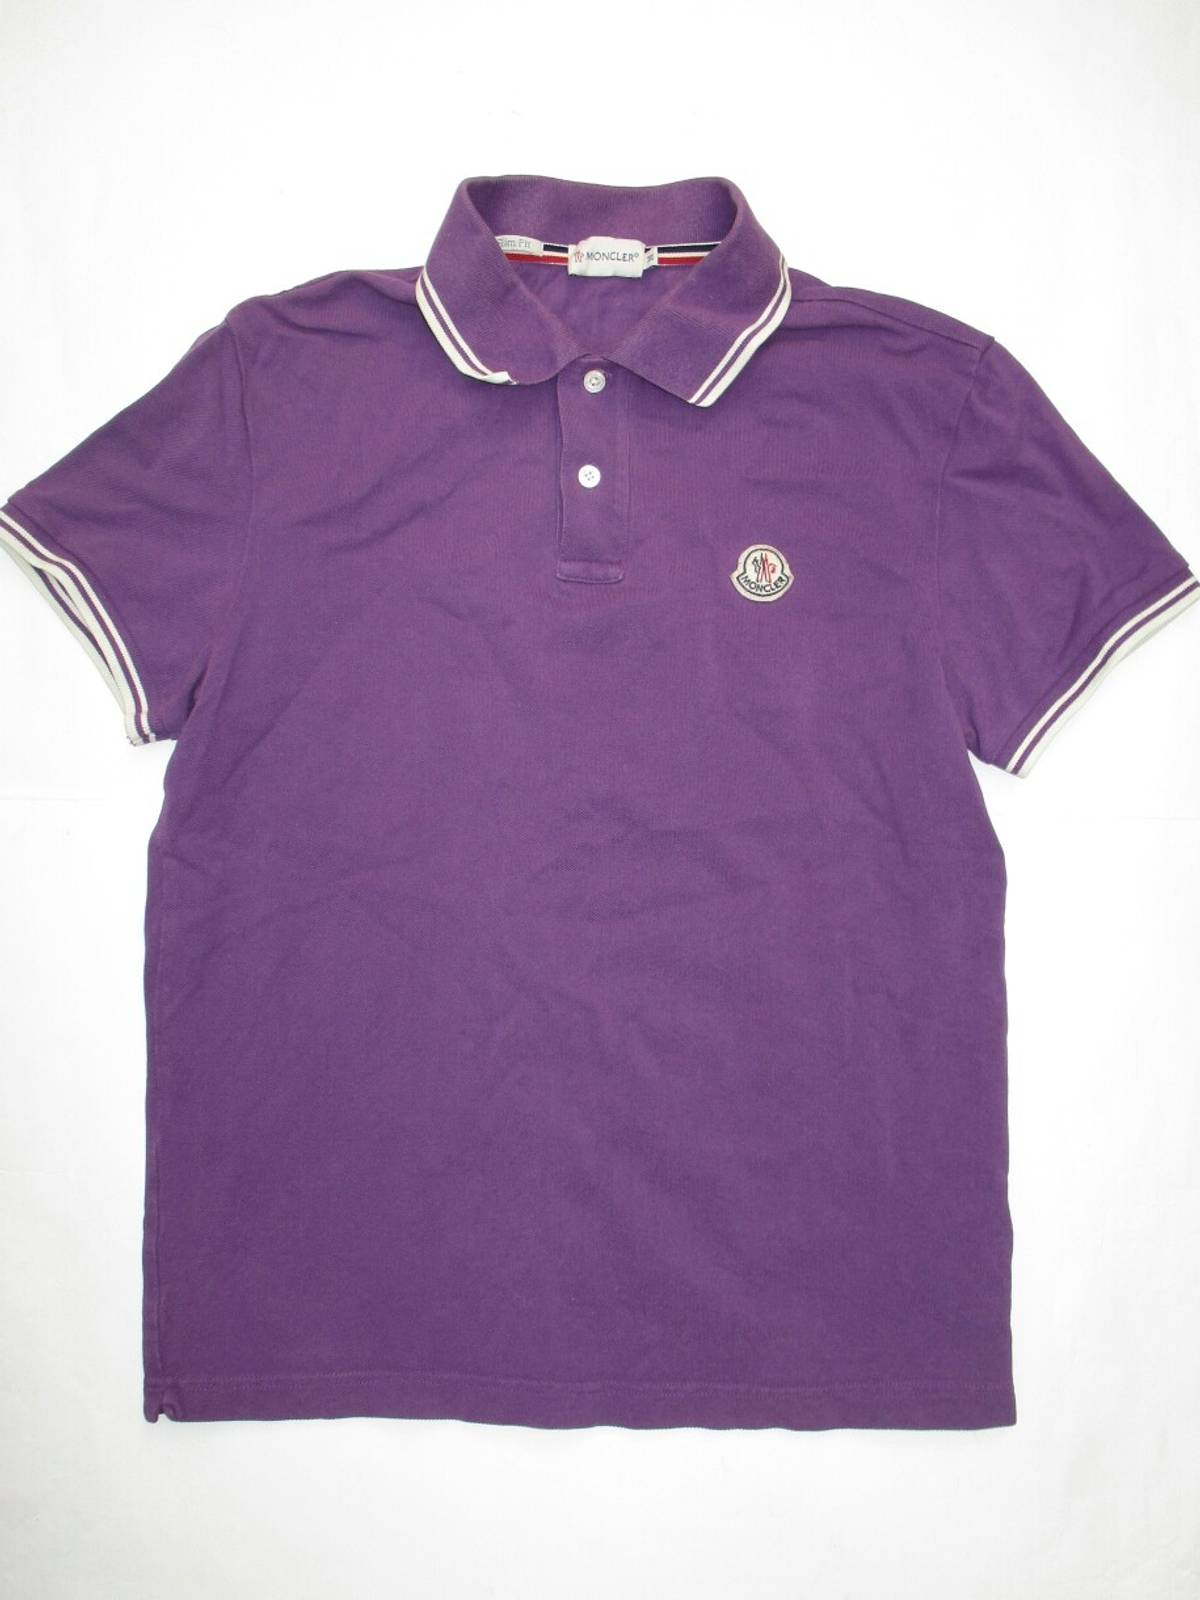 Moncler Moncler Polo Shirt Size M Polos For Sale Grailed